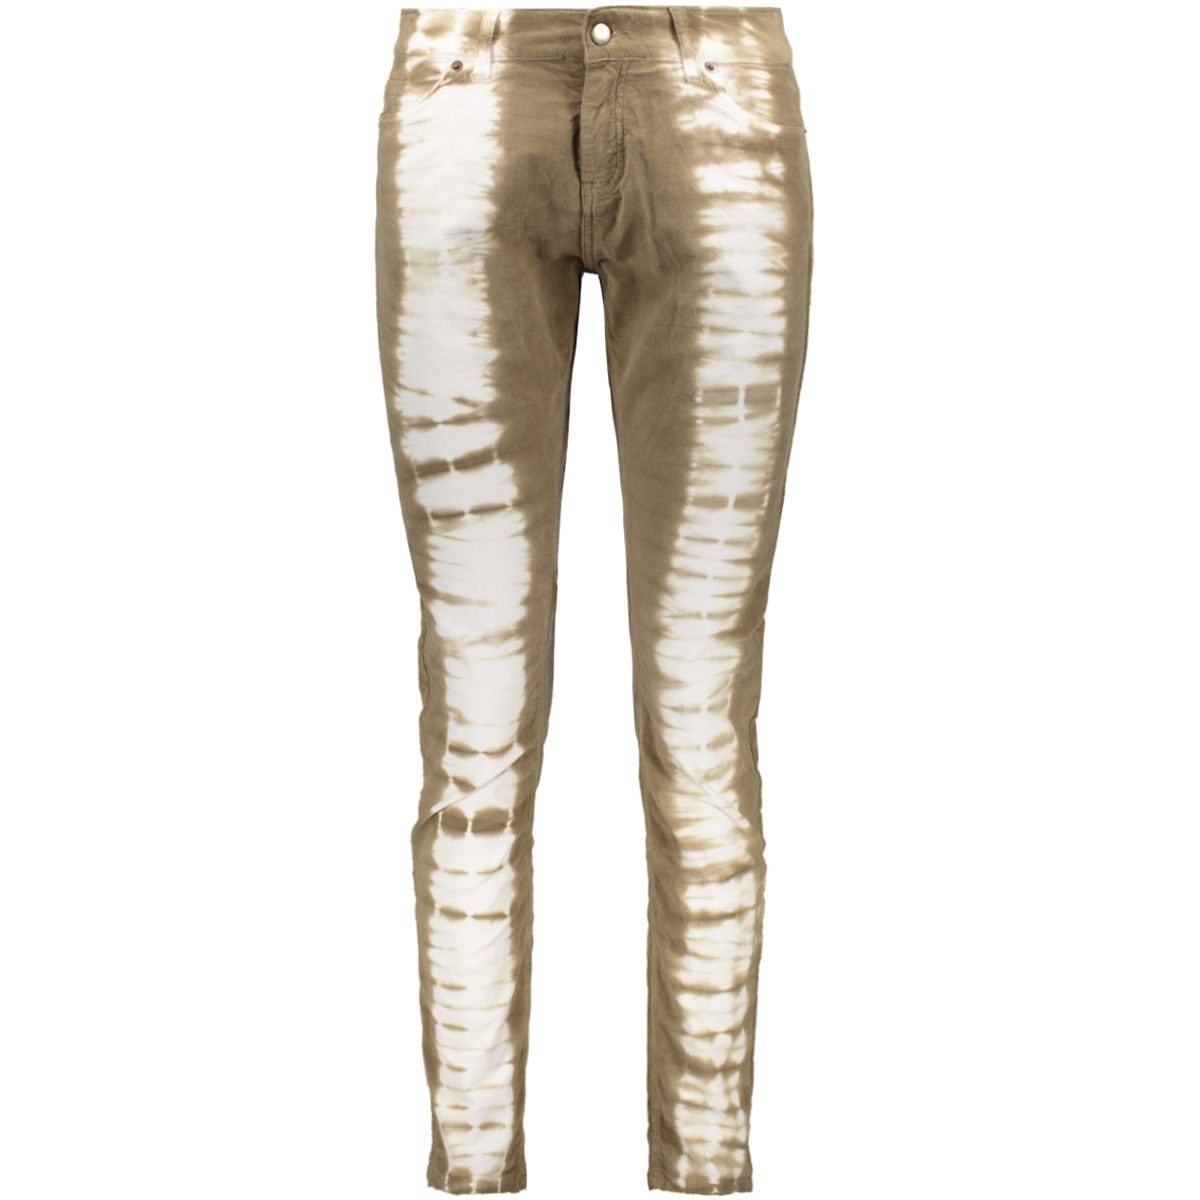 20-062-7103 10 days broek dark sand